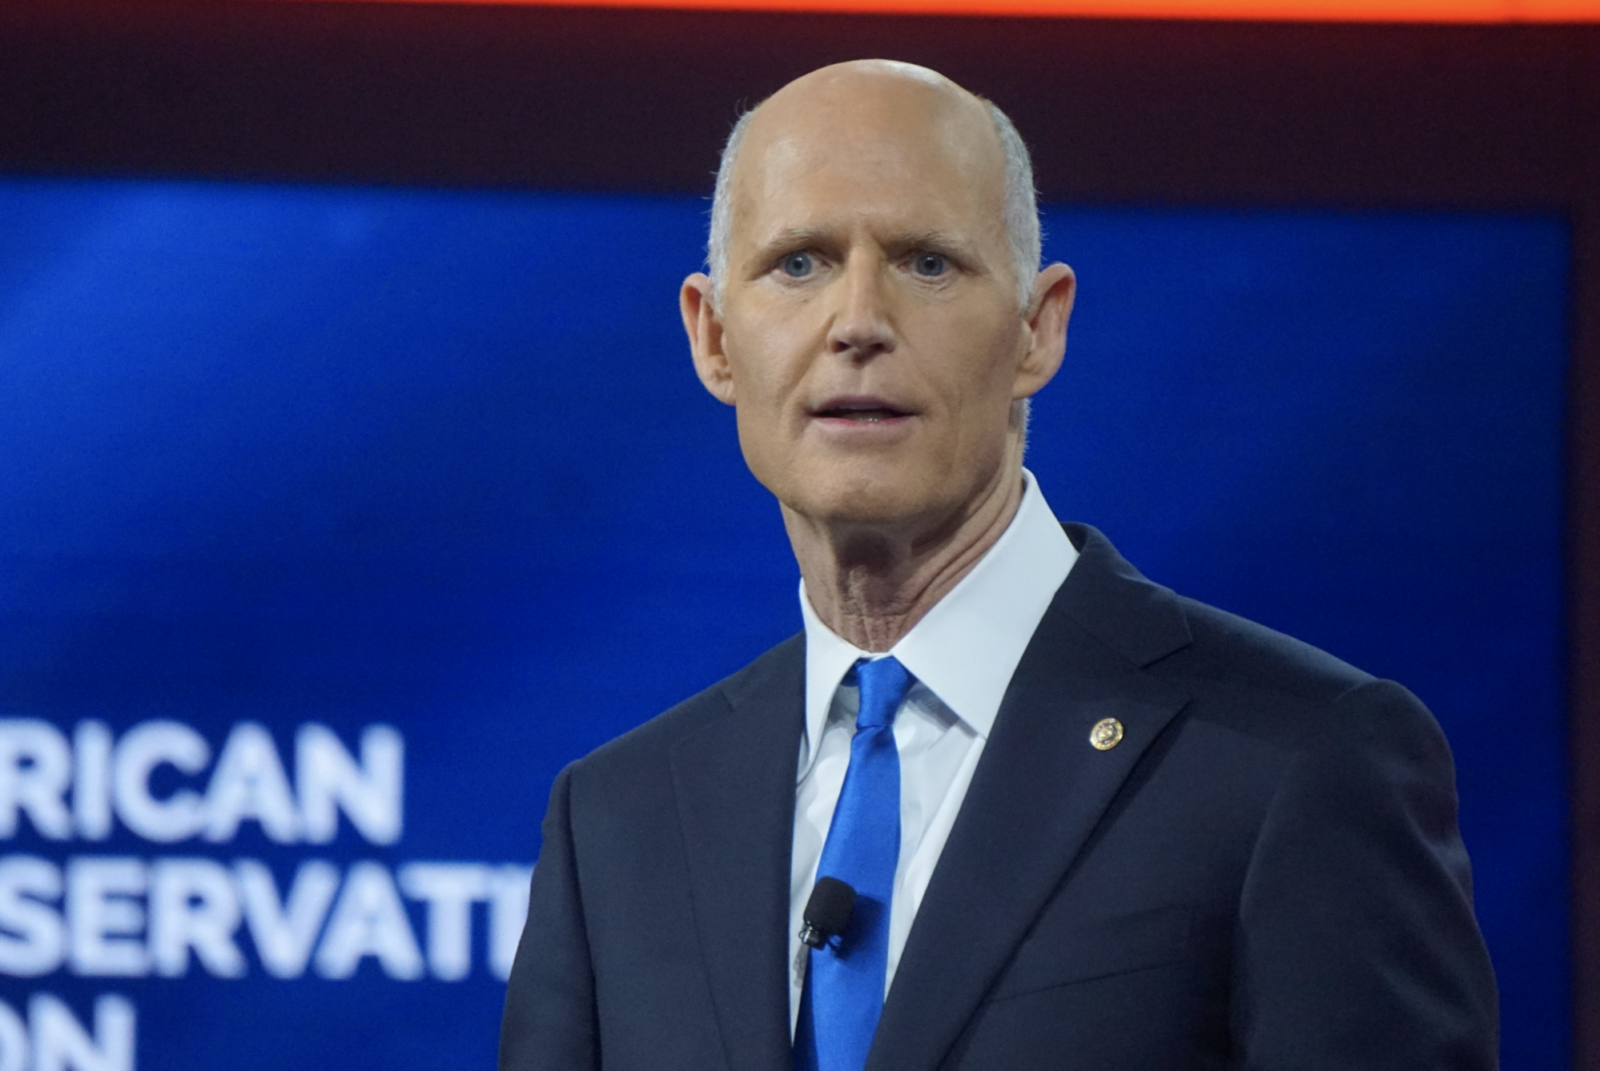 Scott Calls On DeSantis, Other Governors To Return Non-COVID-Related Funds